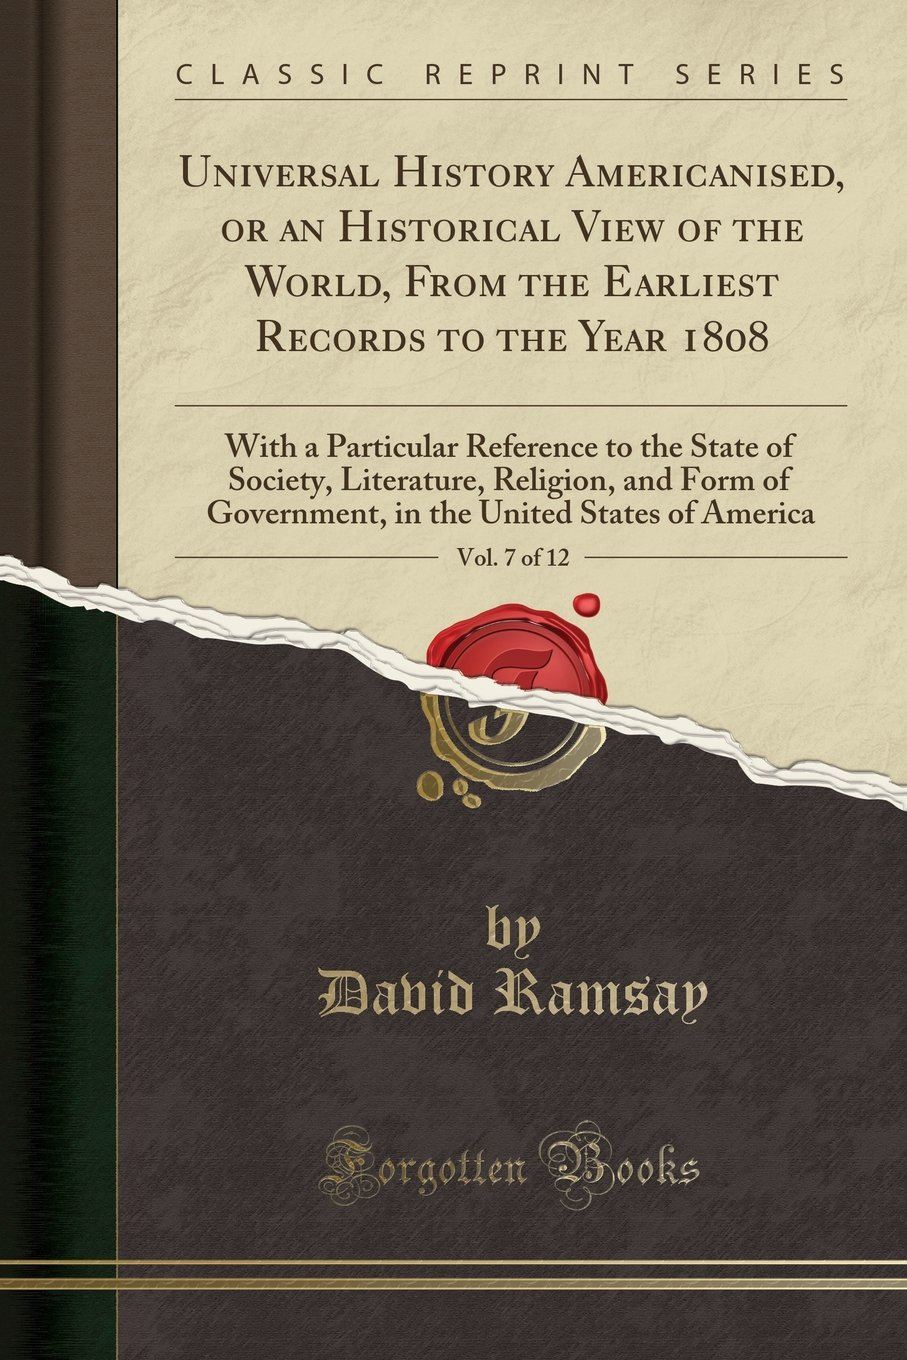 Download Universal History Americanised, or an Historical View of the World, From the Earliest Records to the Year 1808, Vol. 7 of 12: With a Particular ... of Government, in the United States of Americ PDF